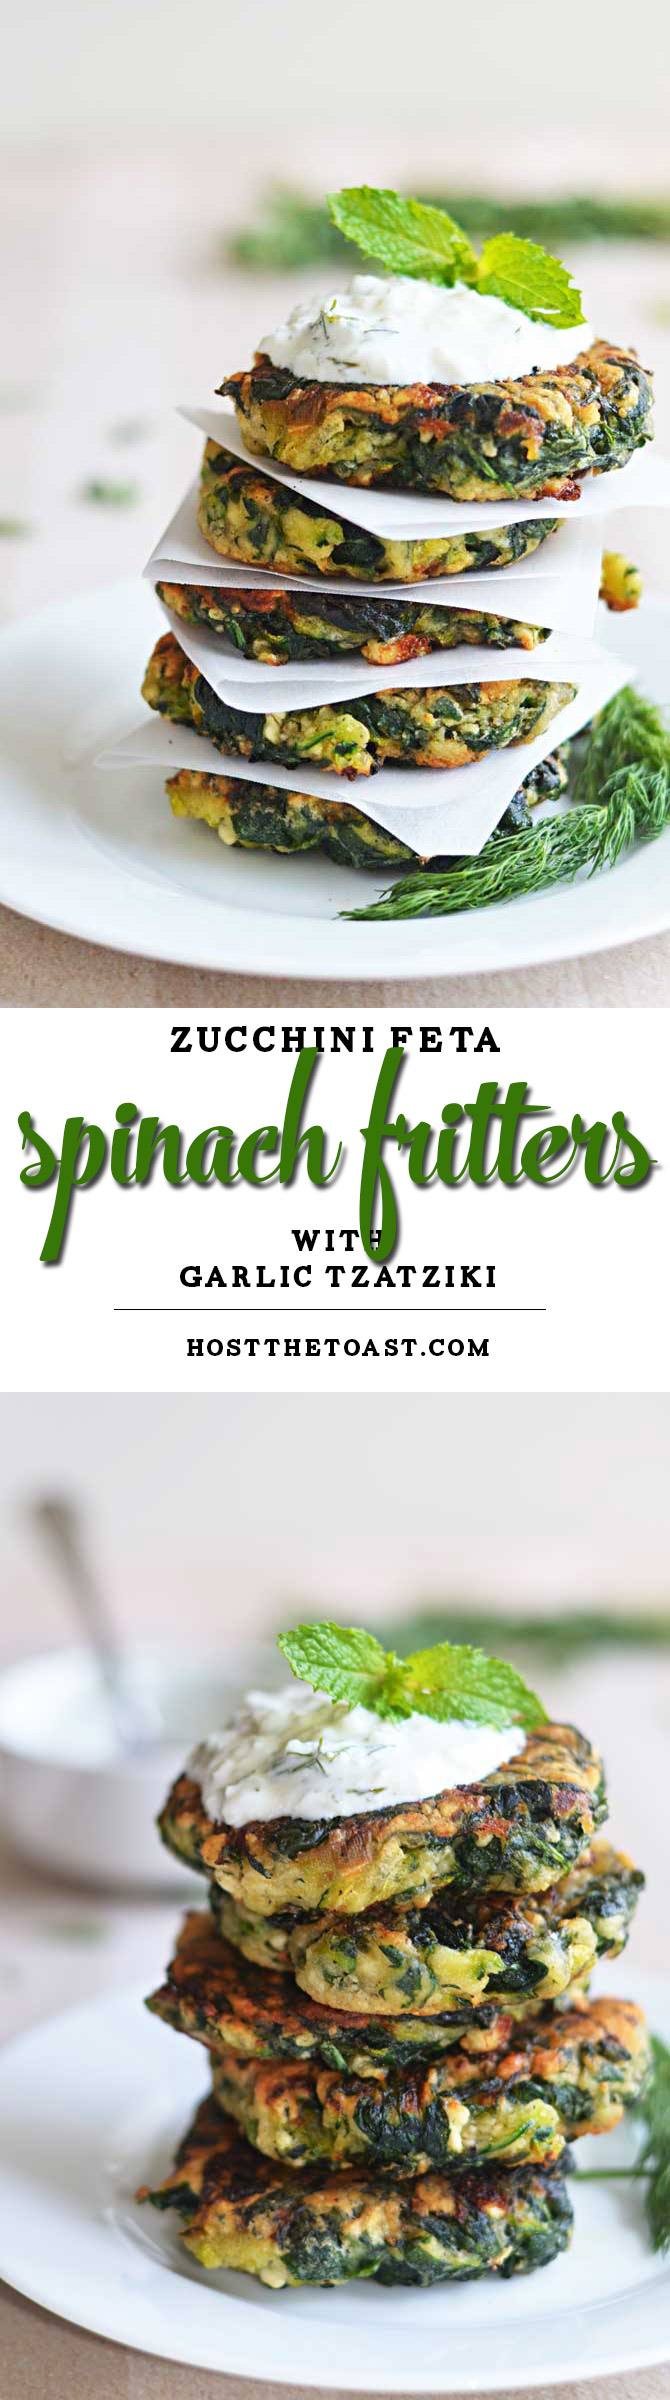 Zucchini, Feta, and Spinach Fritters with Garlic Tzatziki! Great for appetizers or a light snack, and a fantastic way to sneak in some veggies! | hostthetoast.com